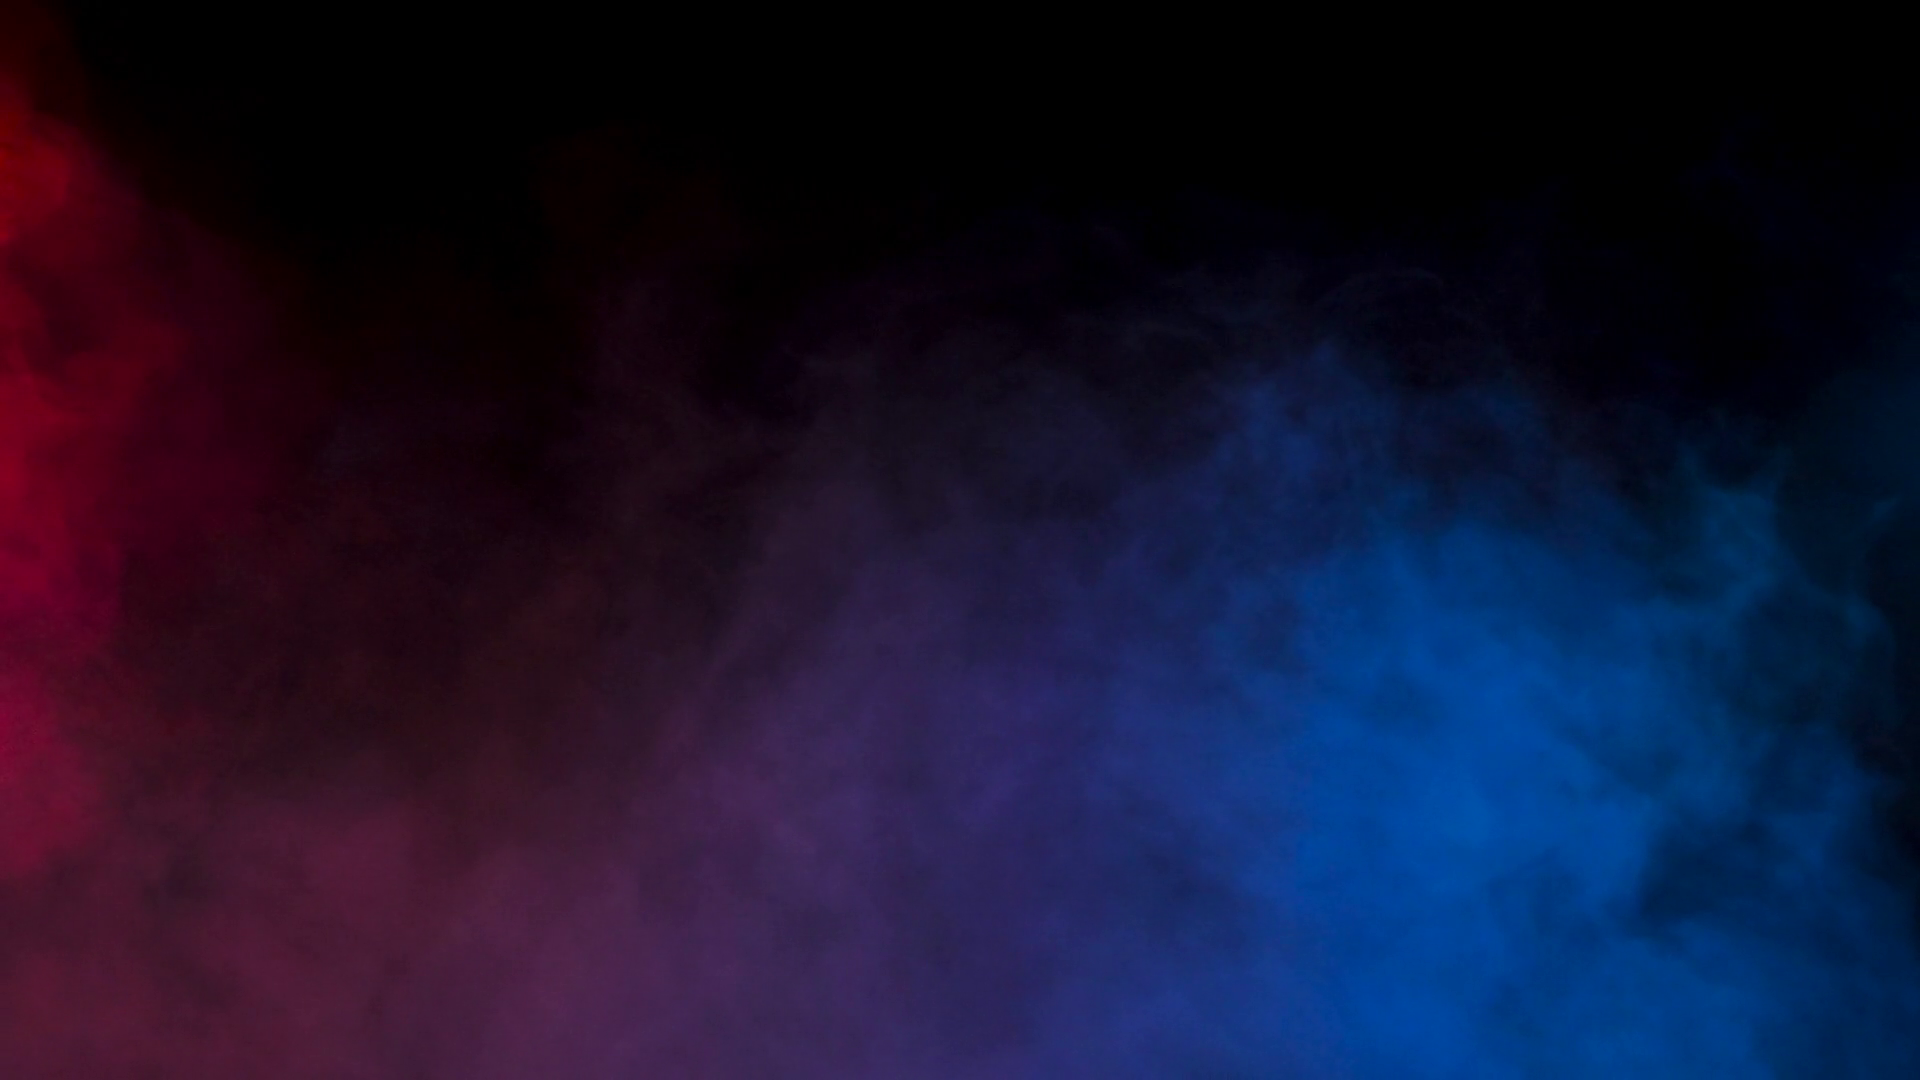 abstract blurred smoke in red and blue colors over a black background in studio 4k footage stock video footage storyblocks abstract blurred smoke in red and blue colors over a black background in studio 4k footage